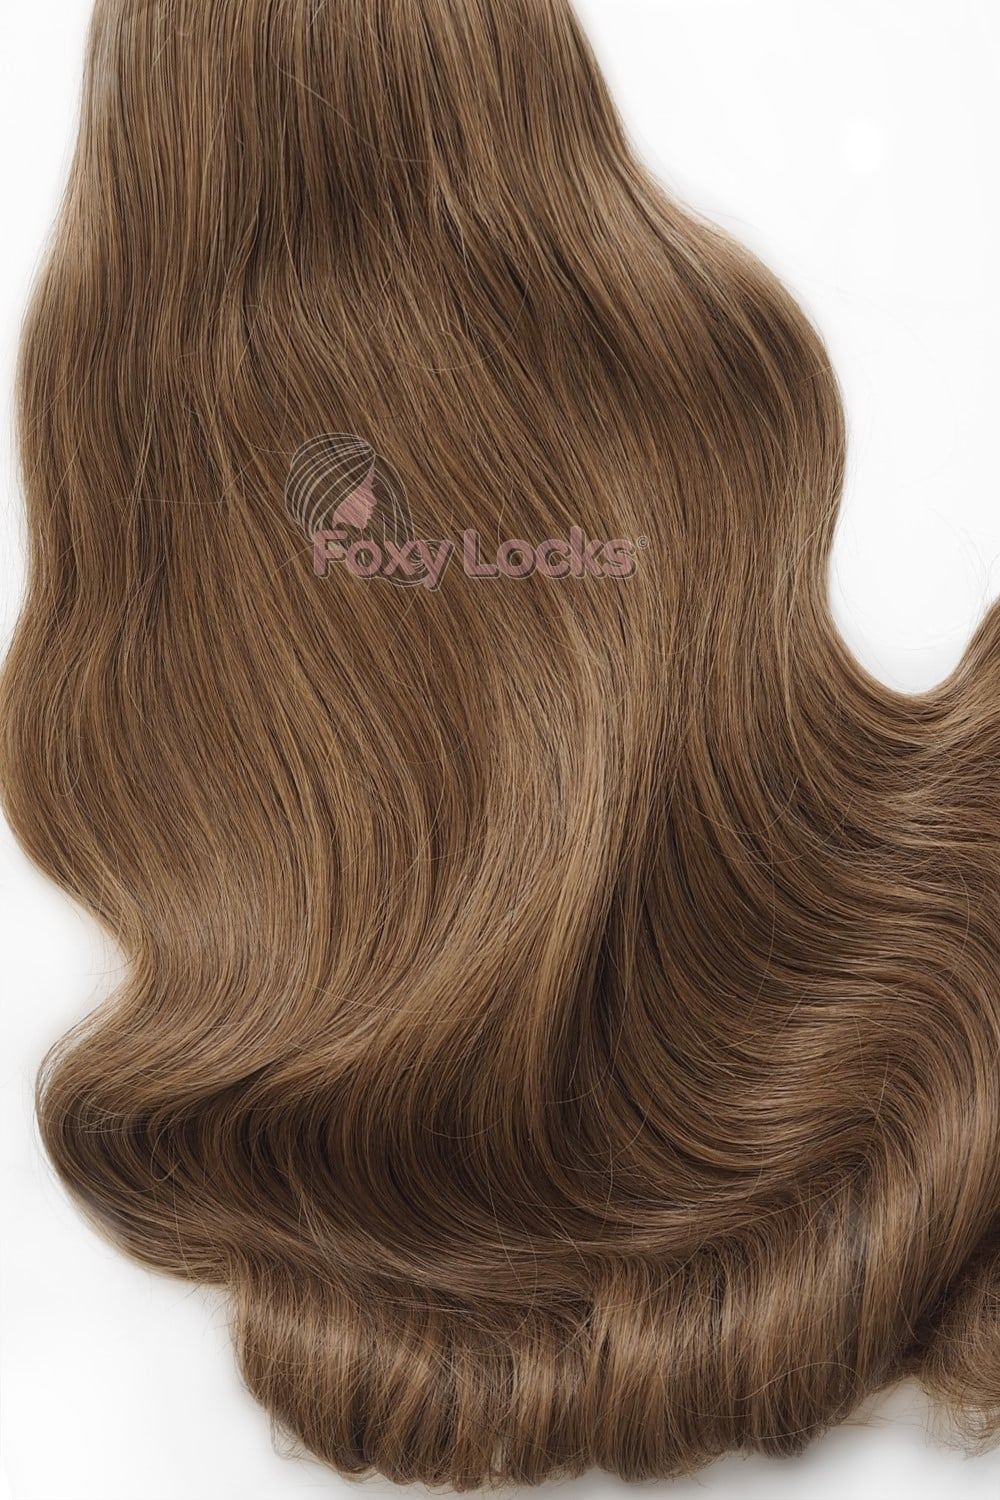 Sunkissed Brown Superior 20 Clip In Human Hair